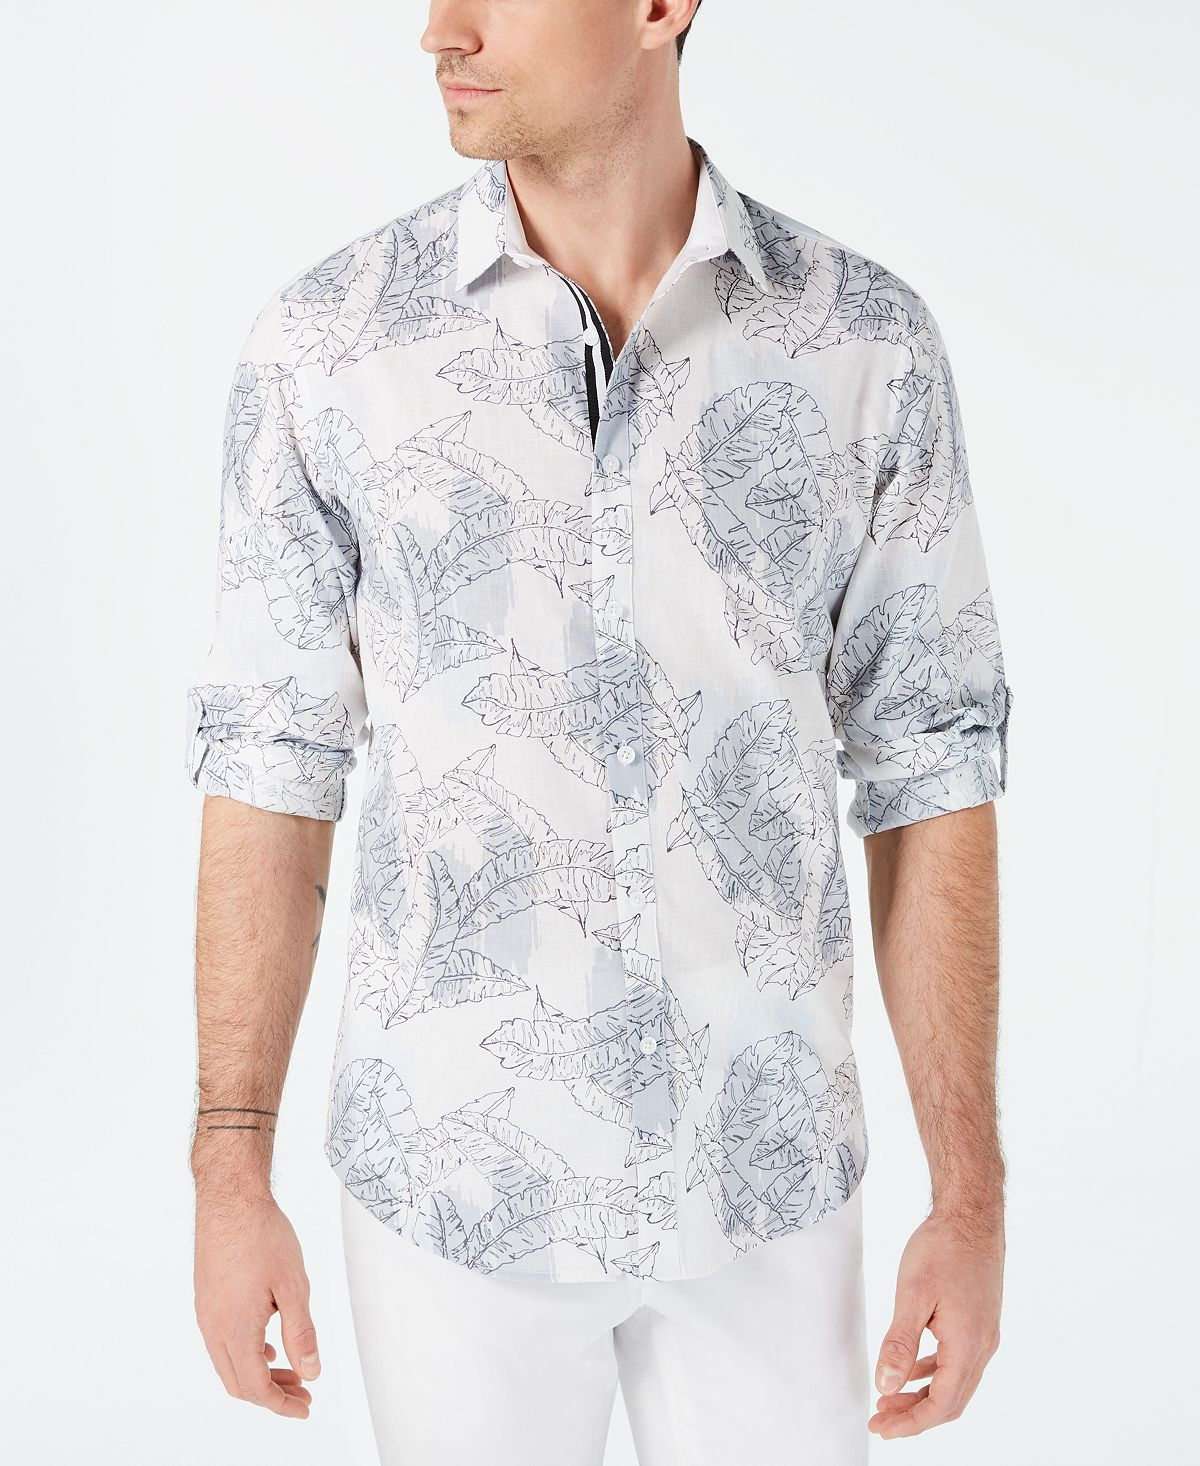 Inc Abstract Floral Shirt